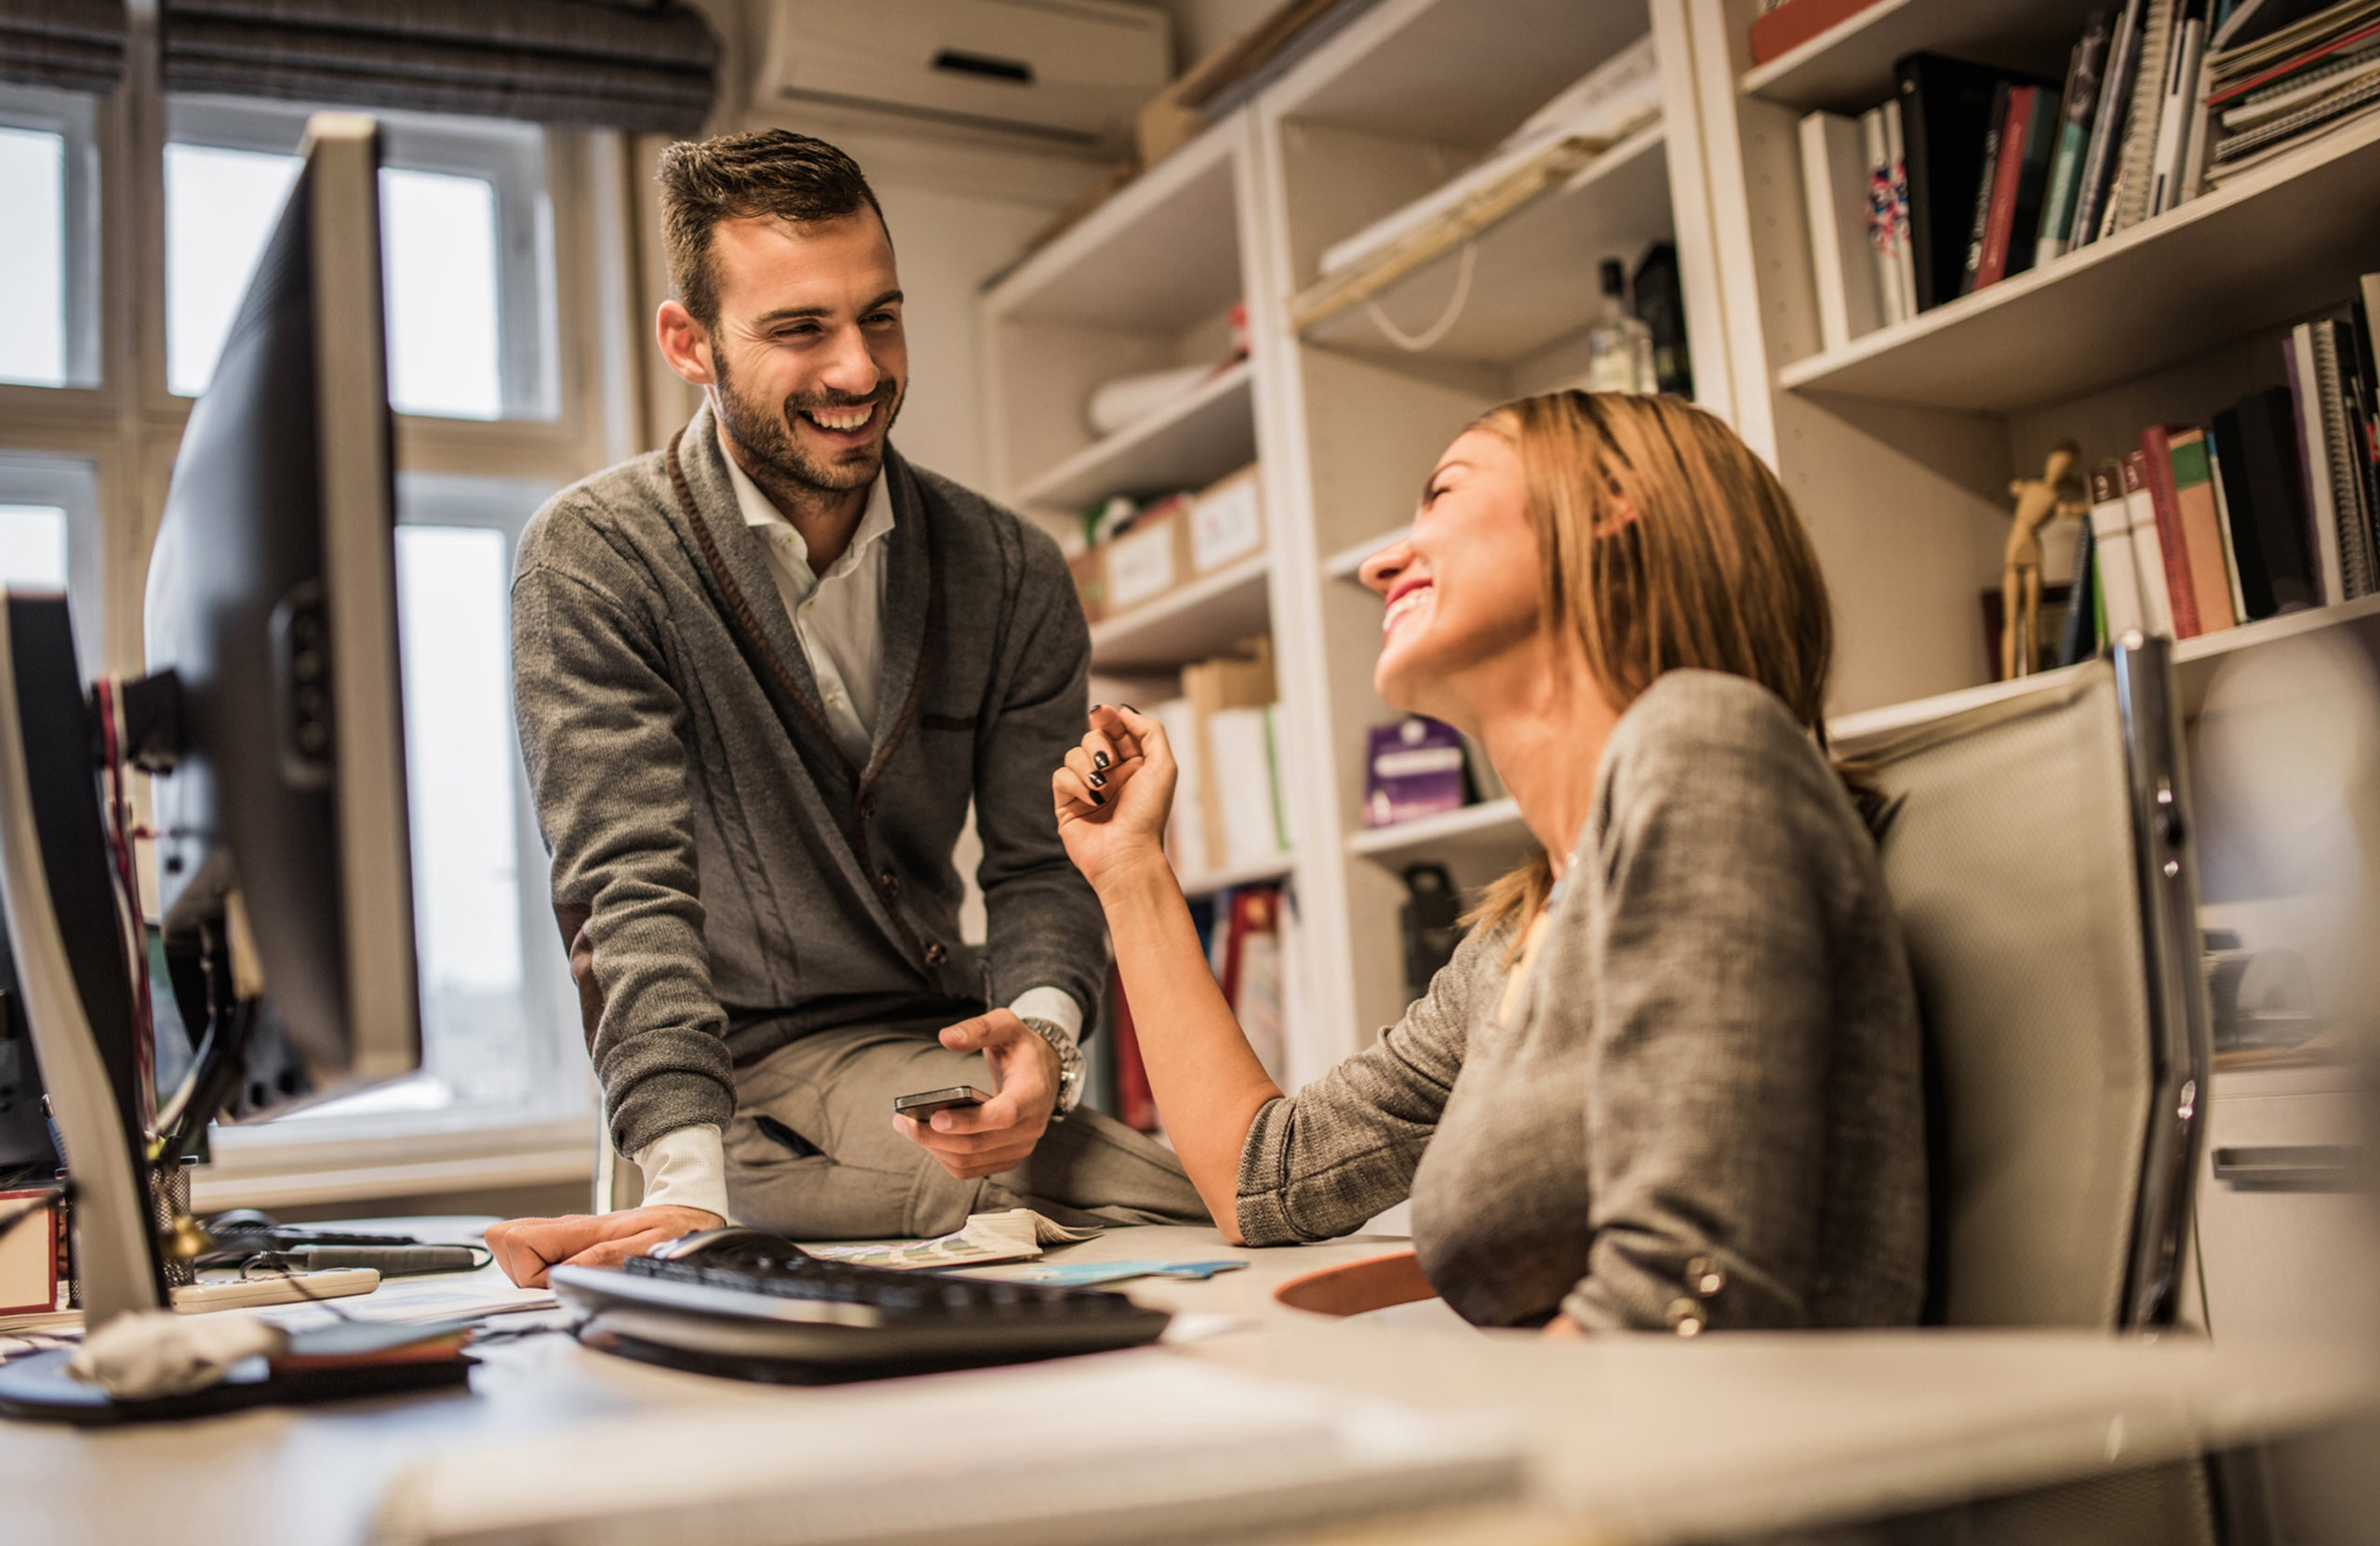 Has your office romance gone sour? Here's how to survive the breakup and keep your focus on work.